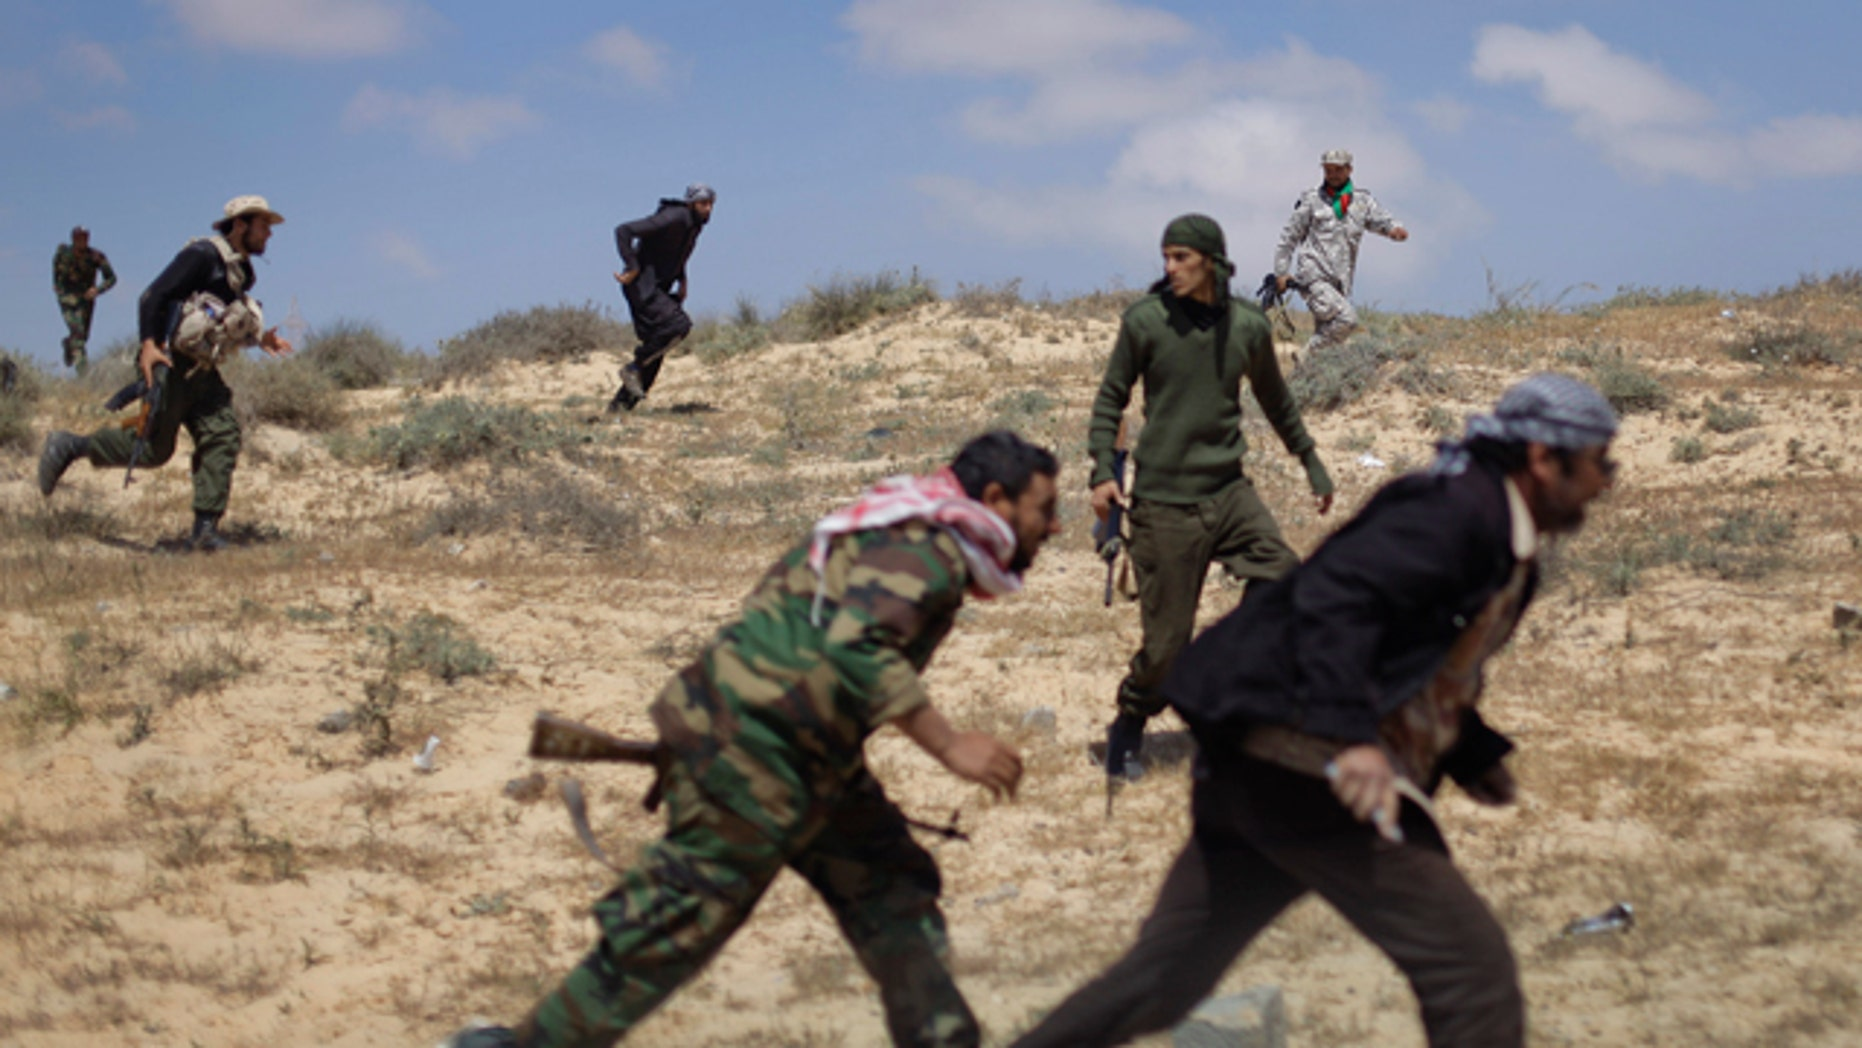 April 4: Rebel fighters run for cover from incoming shelling by pro-Qaddafi forces, near the front line in Brega, Libya. Libyan rebels pushed into the strategic oil town of Brega on Monday but came under fire from Muammar Qaddafi's forces, as a government envoy began a diplomatic push in Europe to discuss an end to the fighting. (AP)